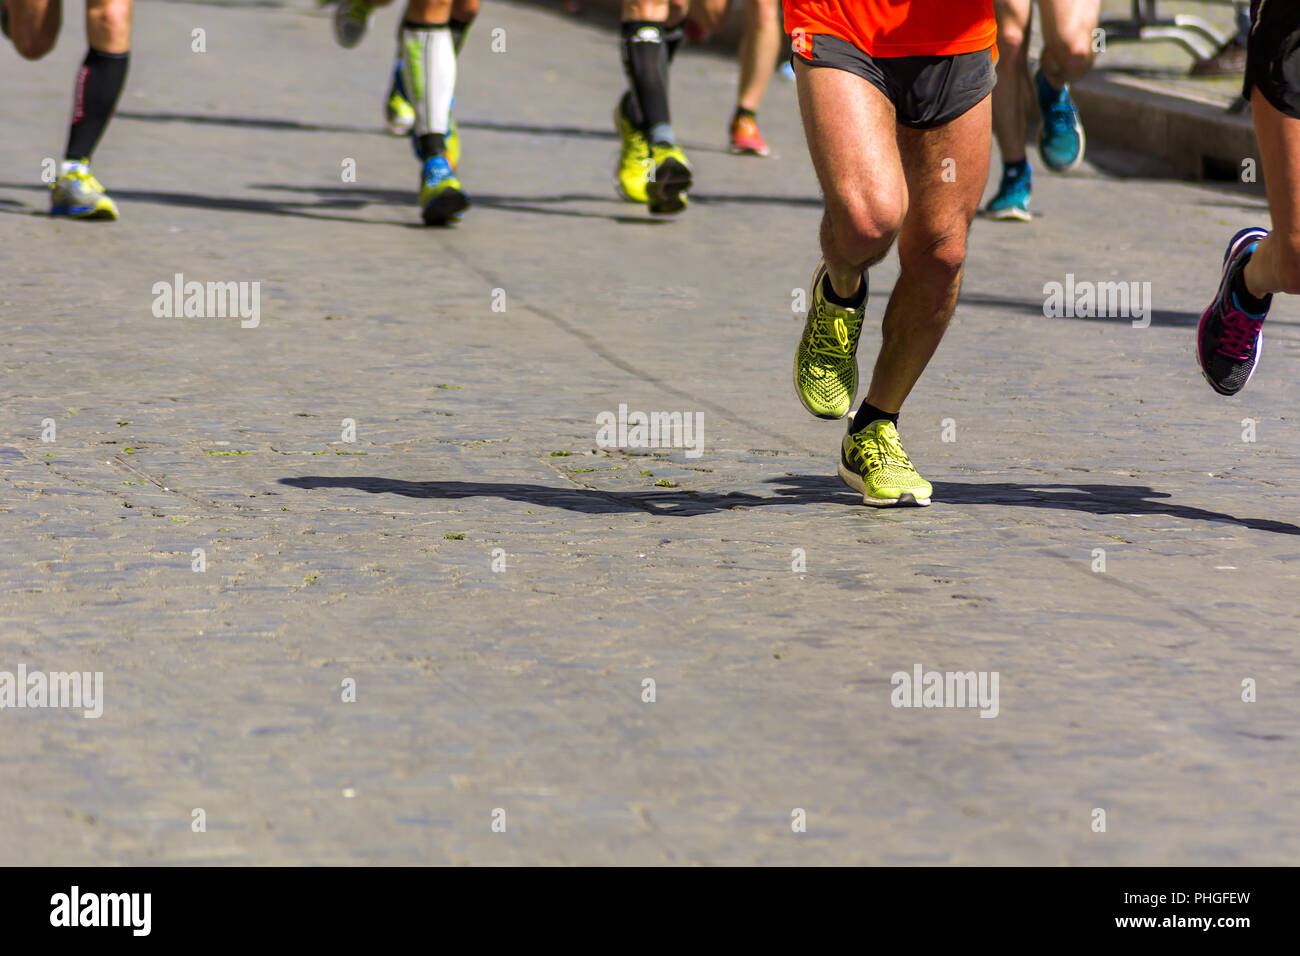 Detail of a group of runners during a city marathon - Stock Image